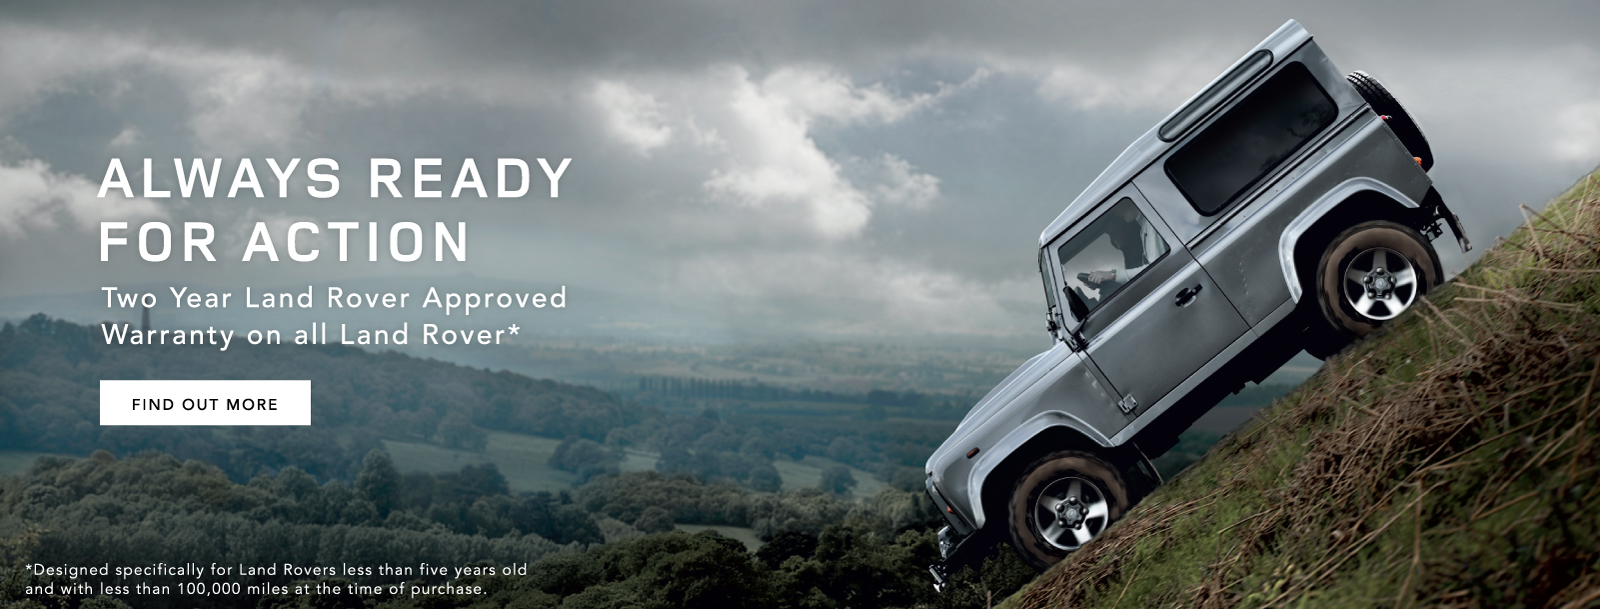 Land Rover Always Ready for Action